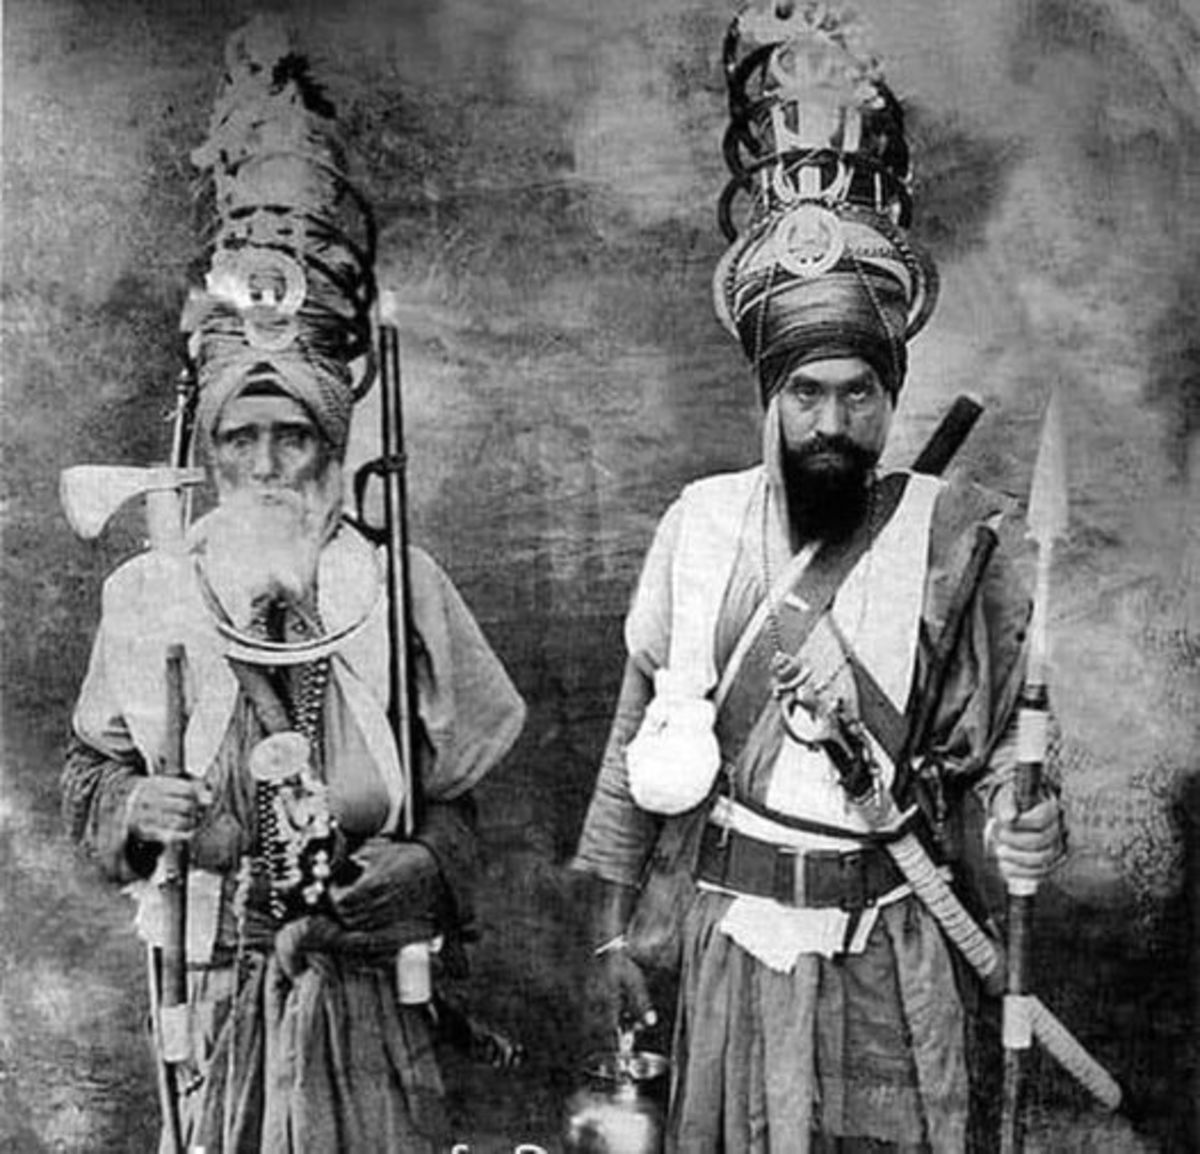 On one side 12 thousand Afghani robbers... and on the other side 21 Sikhs